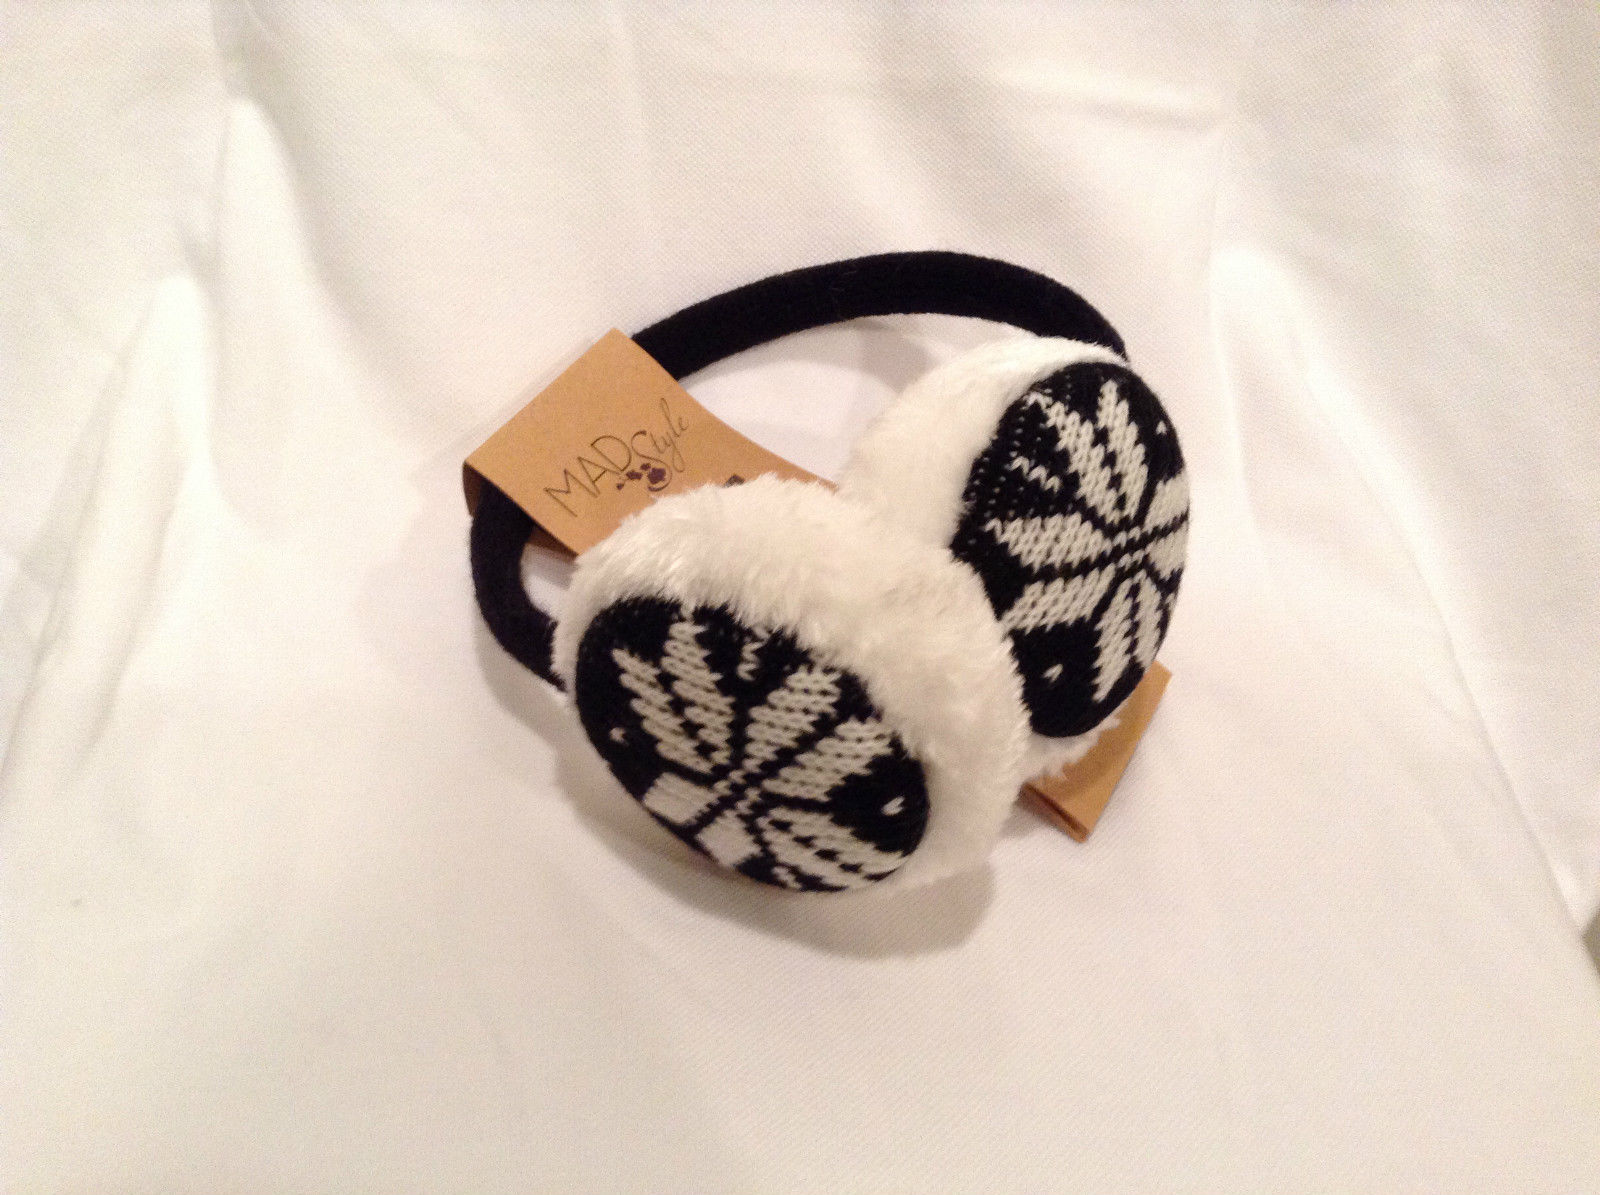 NEW Black White Ear Muffs Warmers Knit Faux Fur Inside Snowflake Design One Size